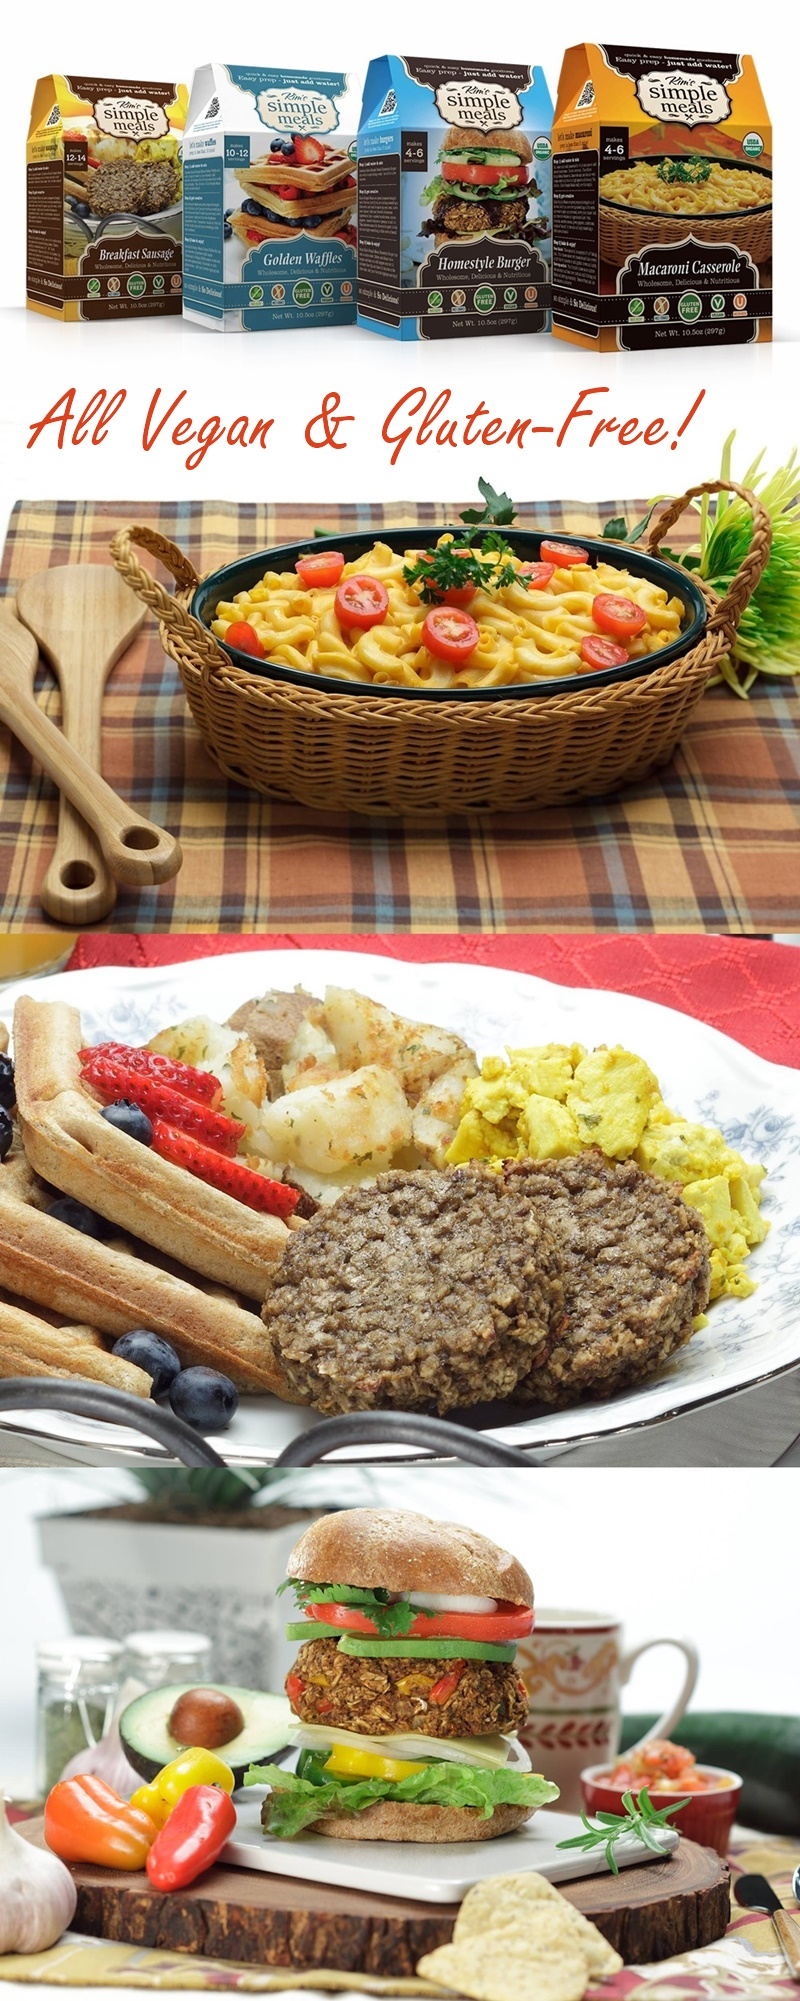 Kim's Simple Meals: Organic, Vegan, Gluten-Free, Just-Add-Water Convenience! Boxed, shelf-stable mixes with 8 servings (macaroni casserole, veggie burger, breakfast sausage & golden waffles).